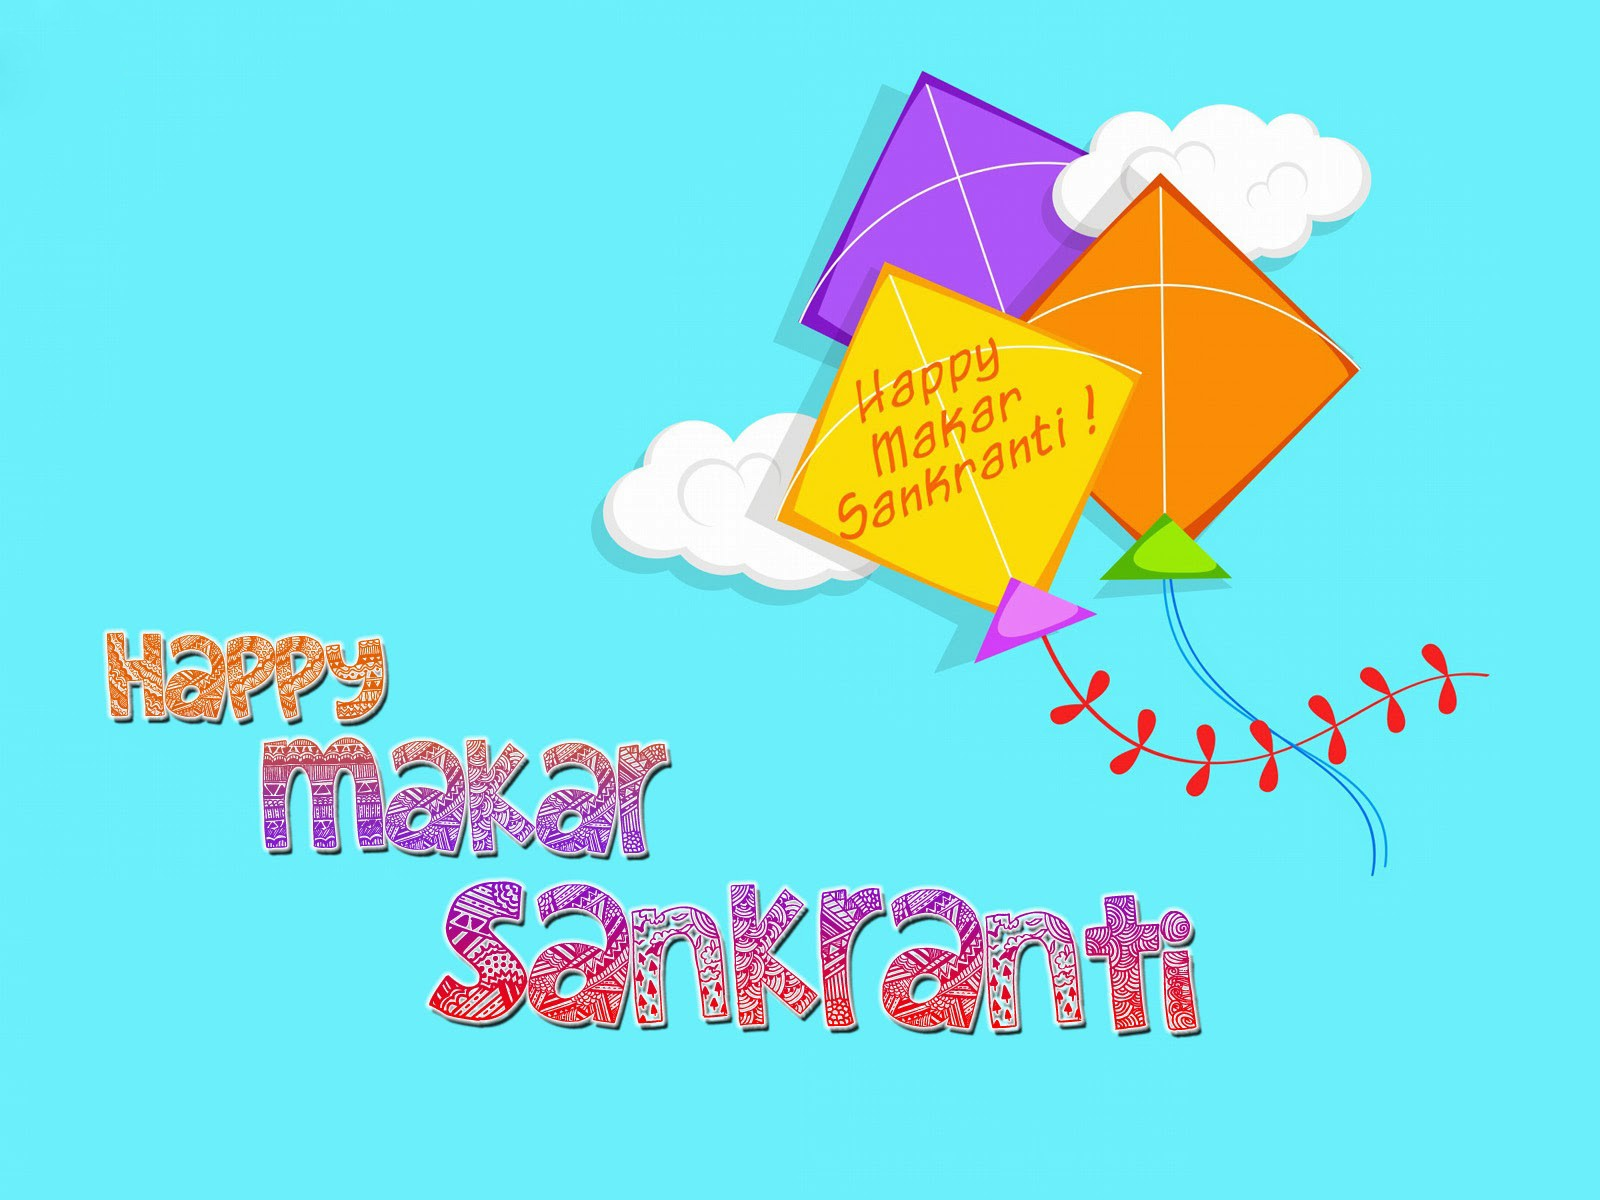 Makar Sankranti Images, Wallpapers & Photos For Pongal 2018